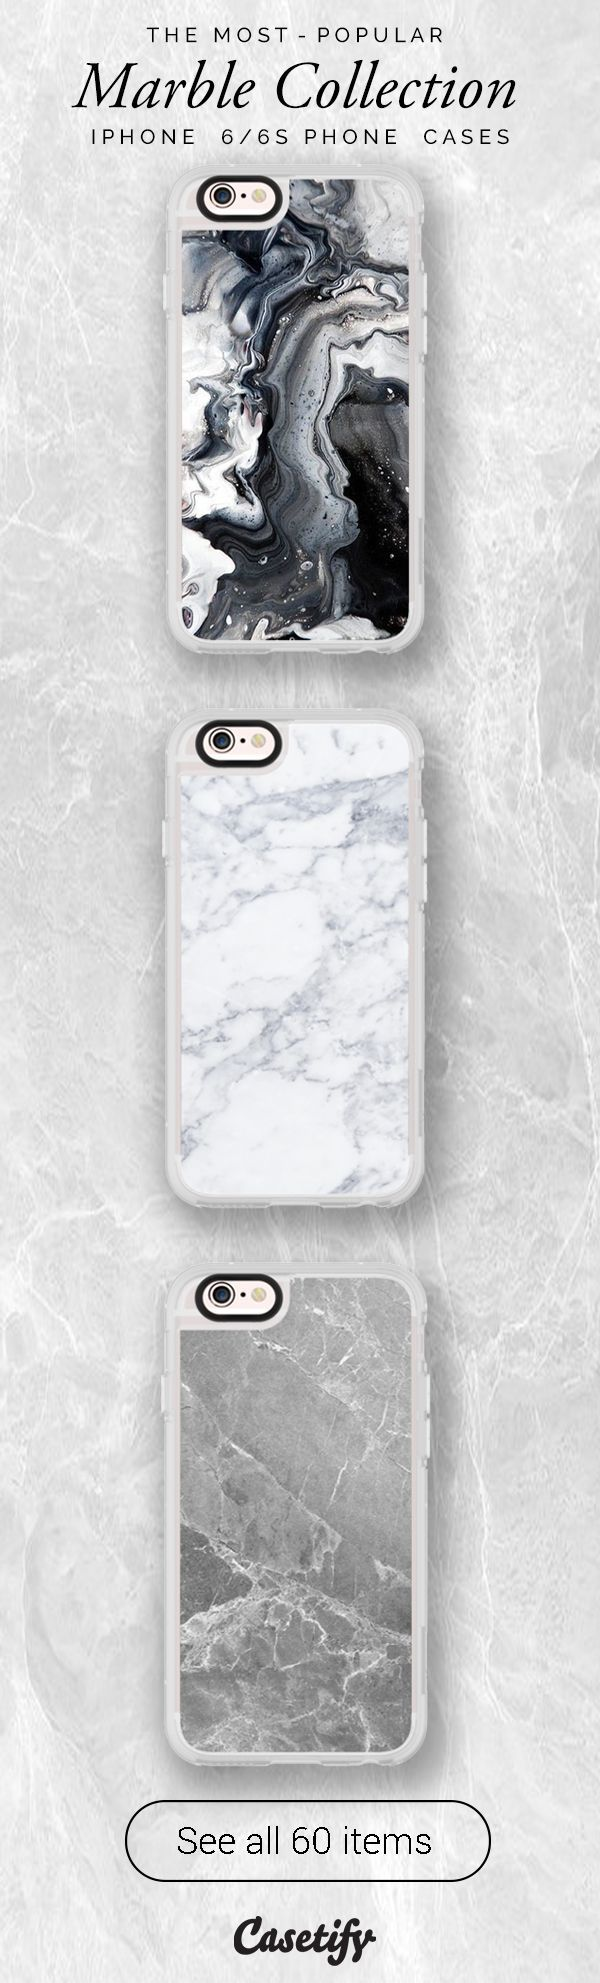 All time favourite marble iPhone 6 protective phone case designs. Marble never go out of style! | Click through to see more iphone phone case ideas >>>https://www.casetify.com/collections/marble/ | @casetify